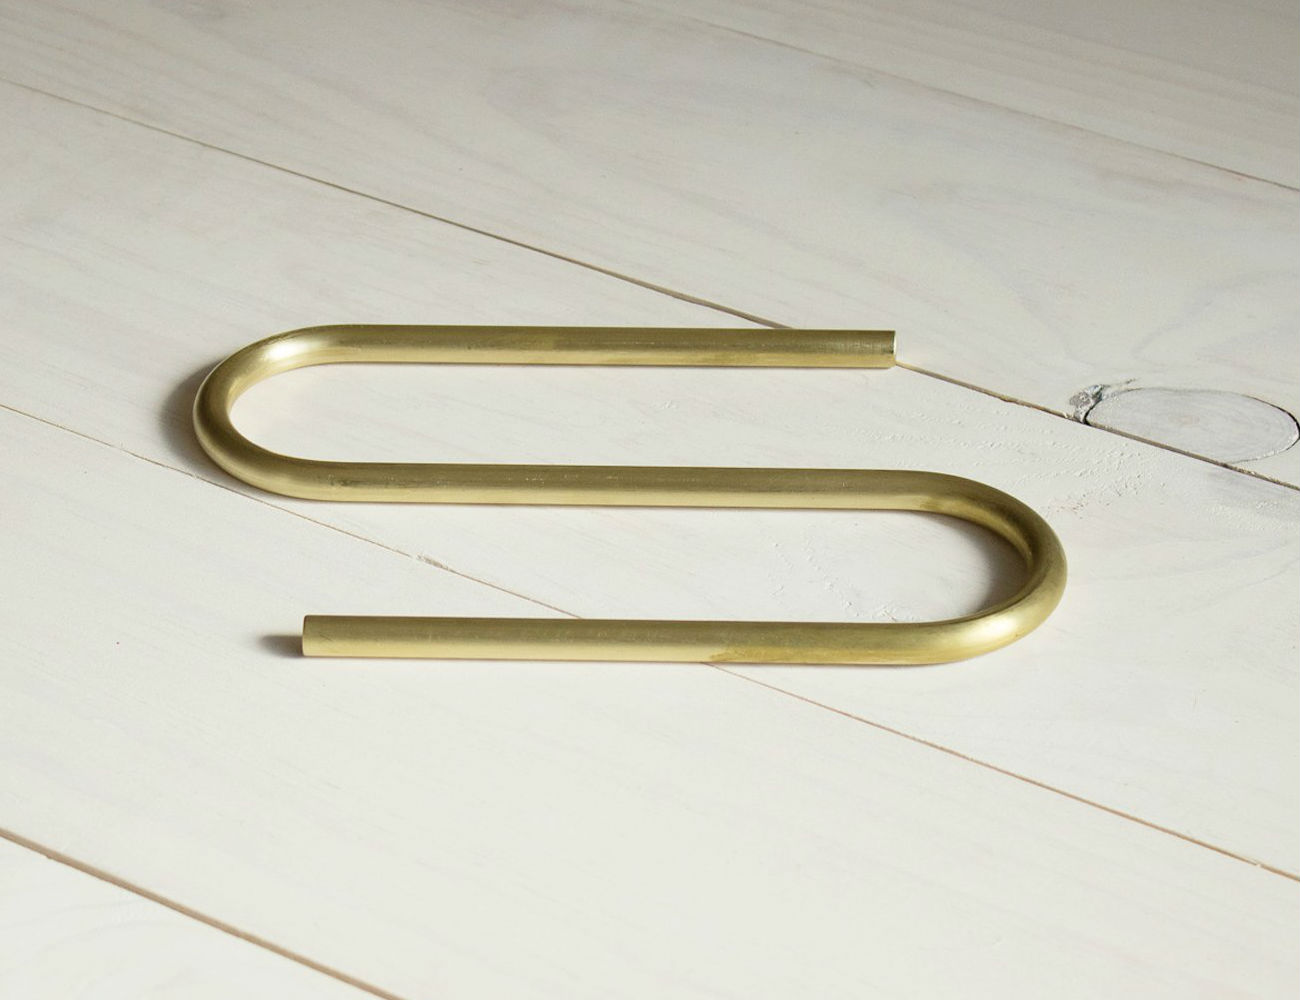 Clip Trivet From Forma Living